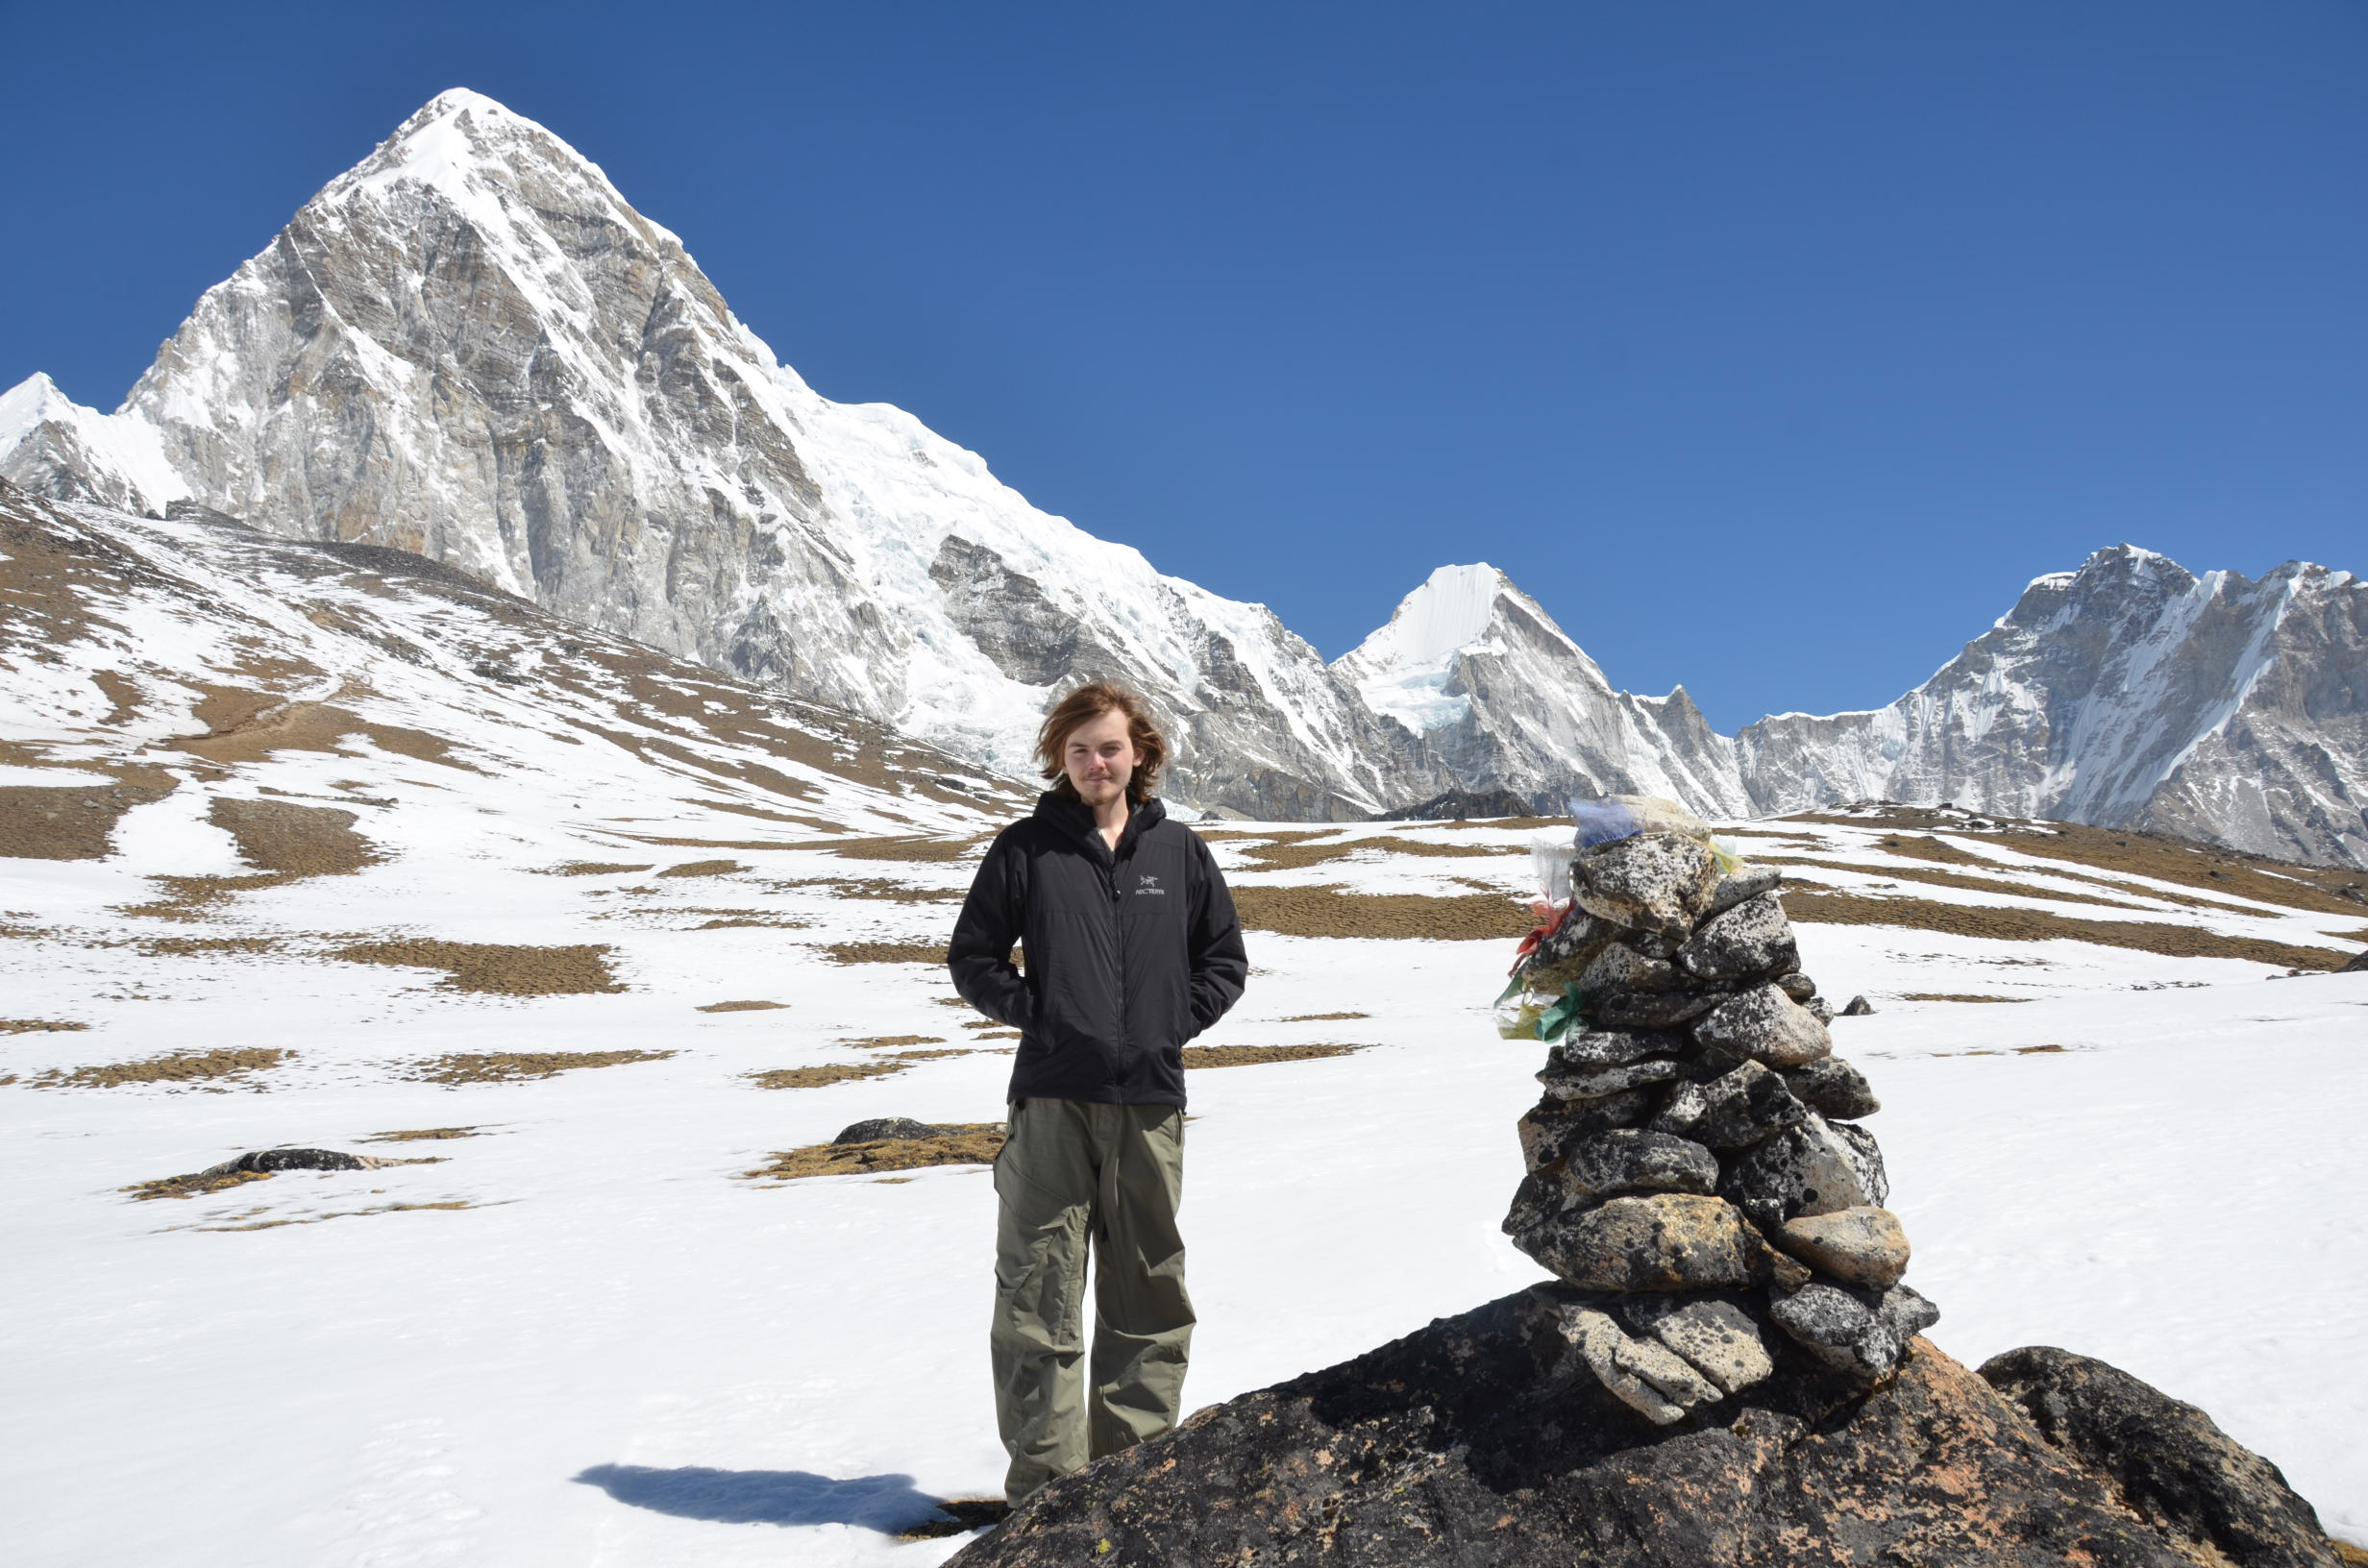 mck-wrk-3-26-15-rory-everest-backdrop-2015-03-26_00-25-48.jpg